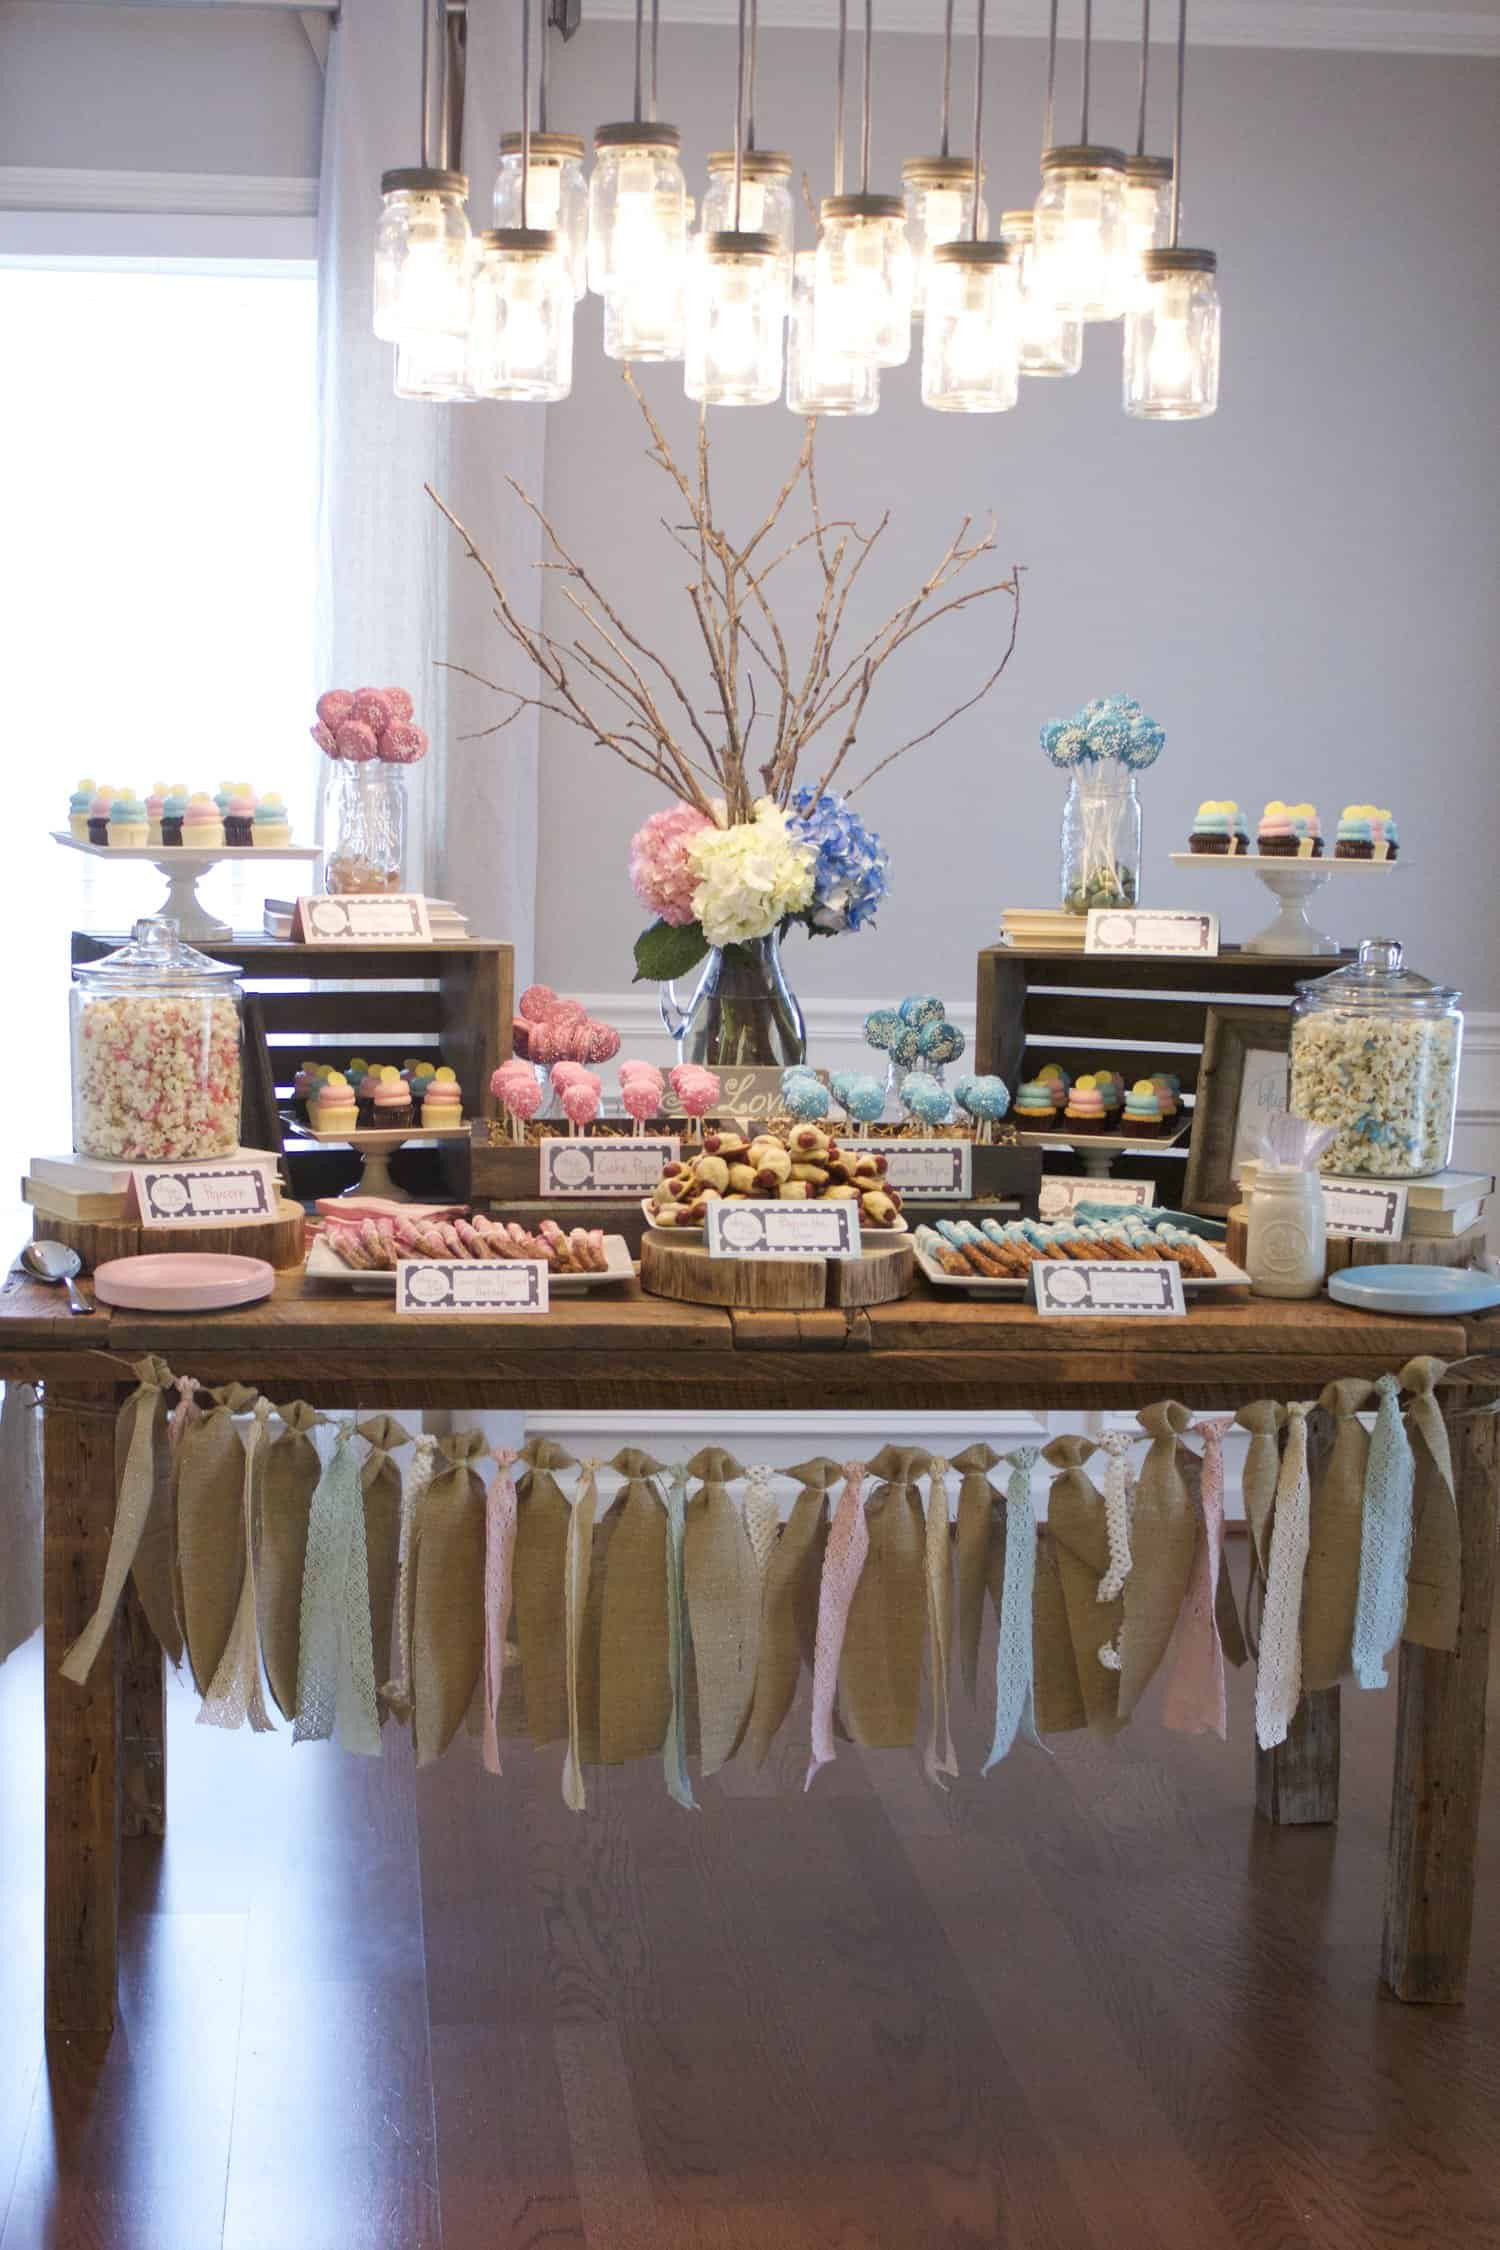 Ideas For A Gender Reveal Party  17 Tips To Throw An Unfor table Gender Reveal Party